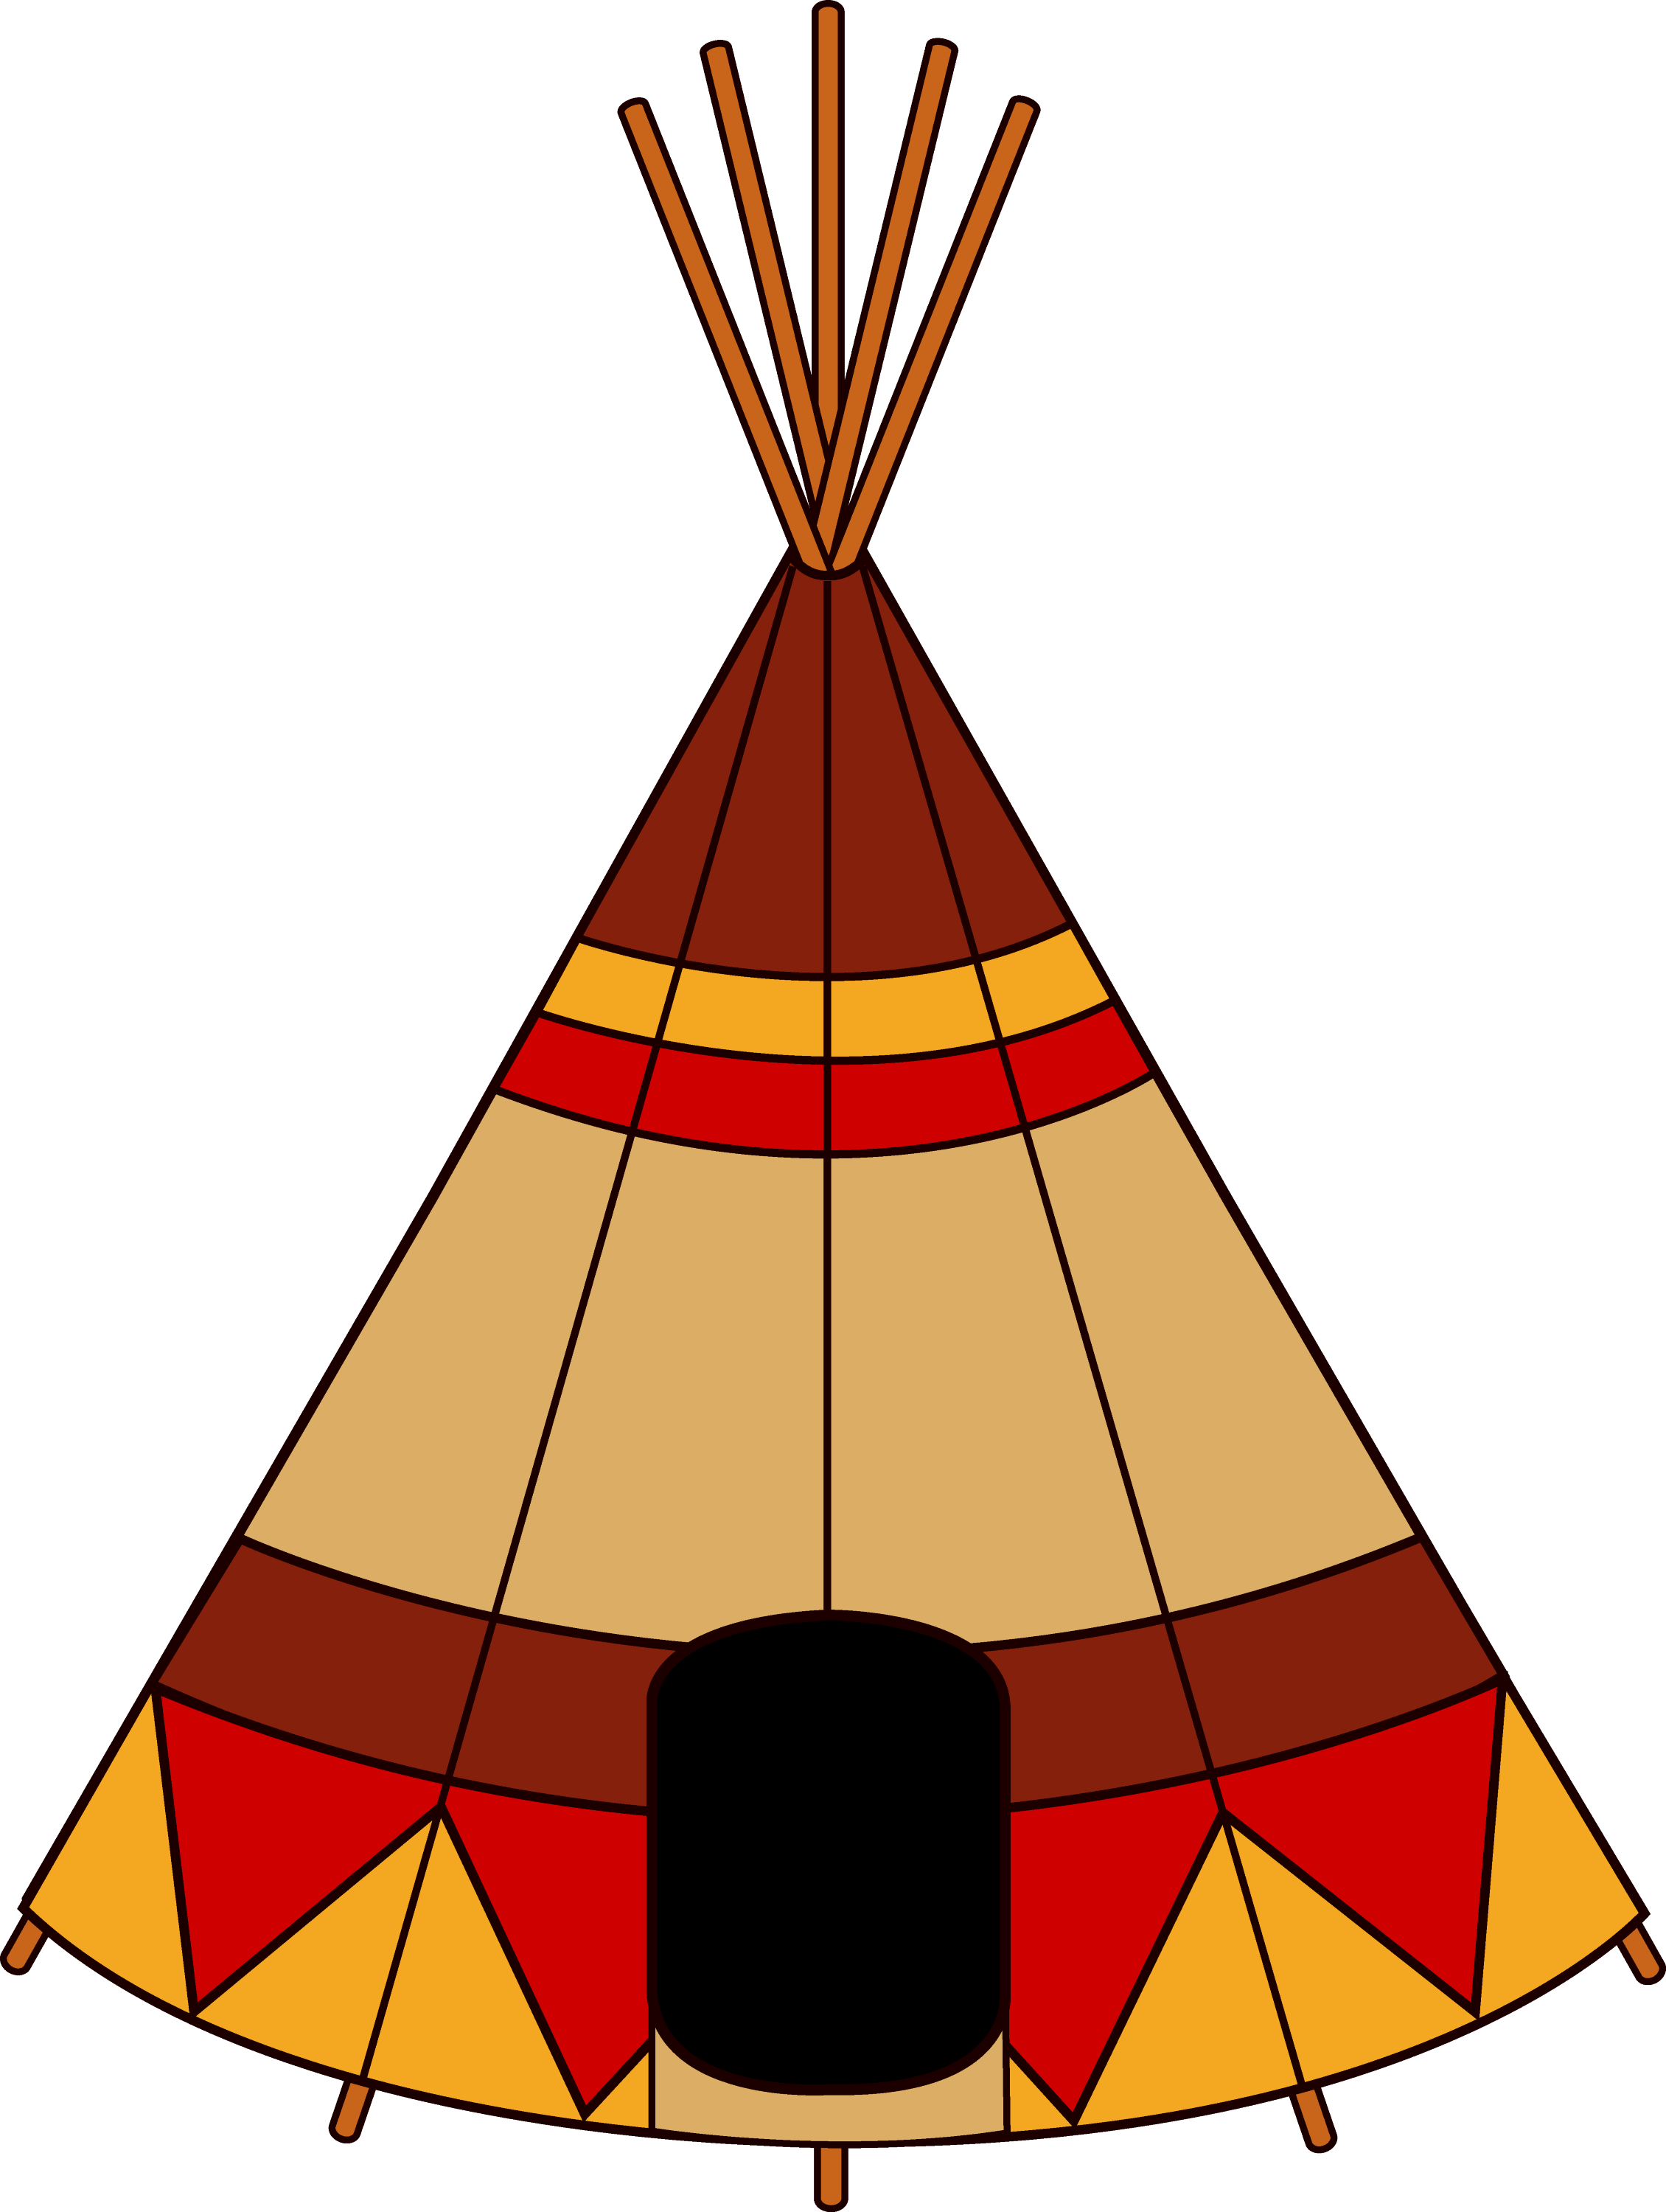 native american teepee free clip art rh sweetclipart com free printable native american clipart free native american clipart borders